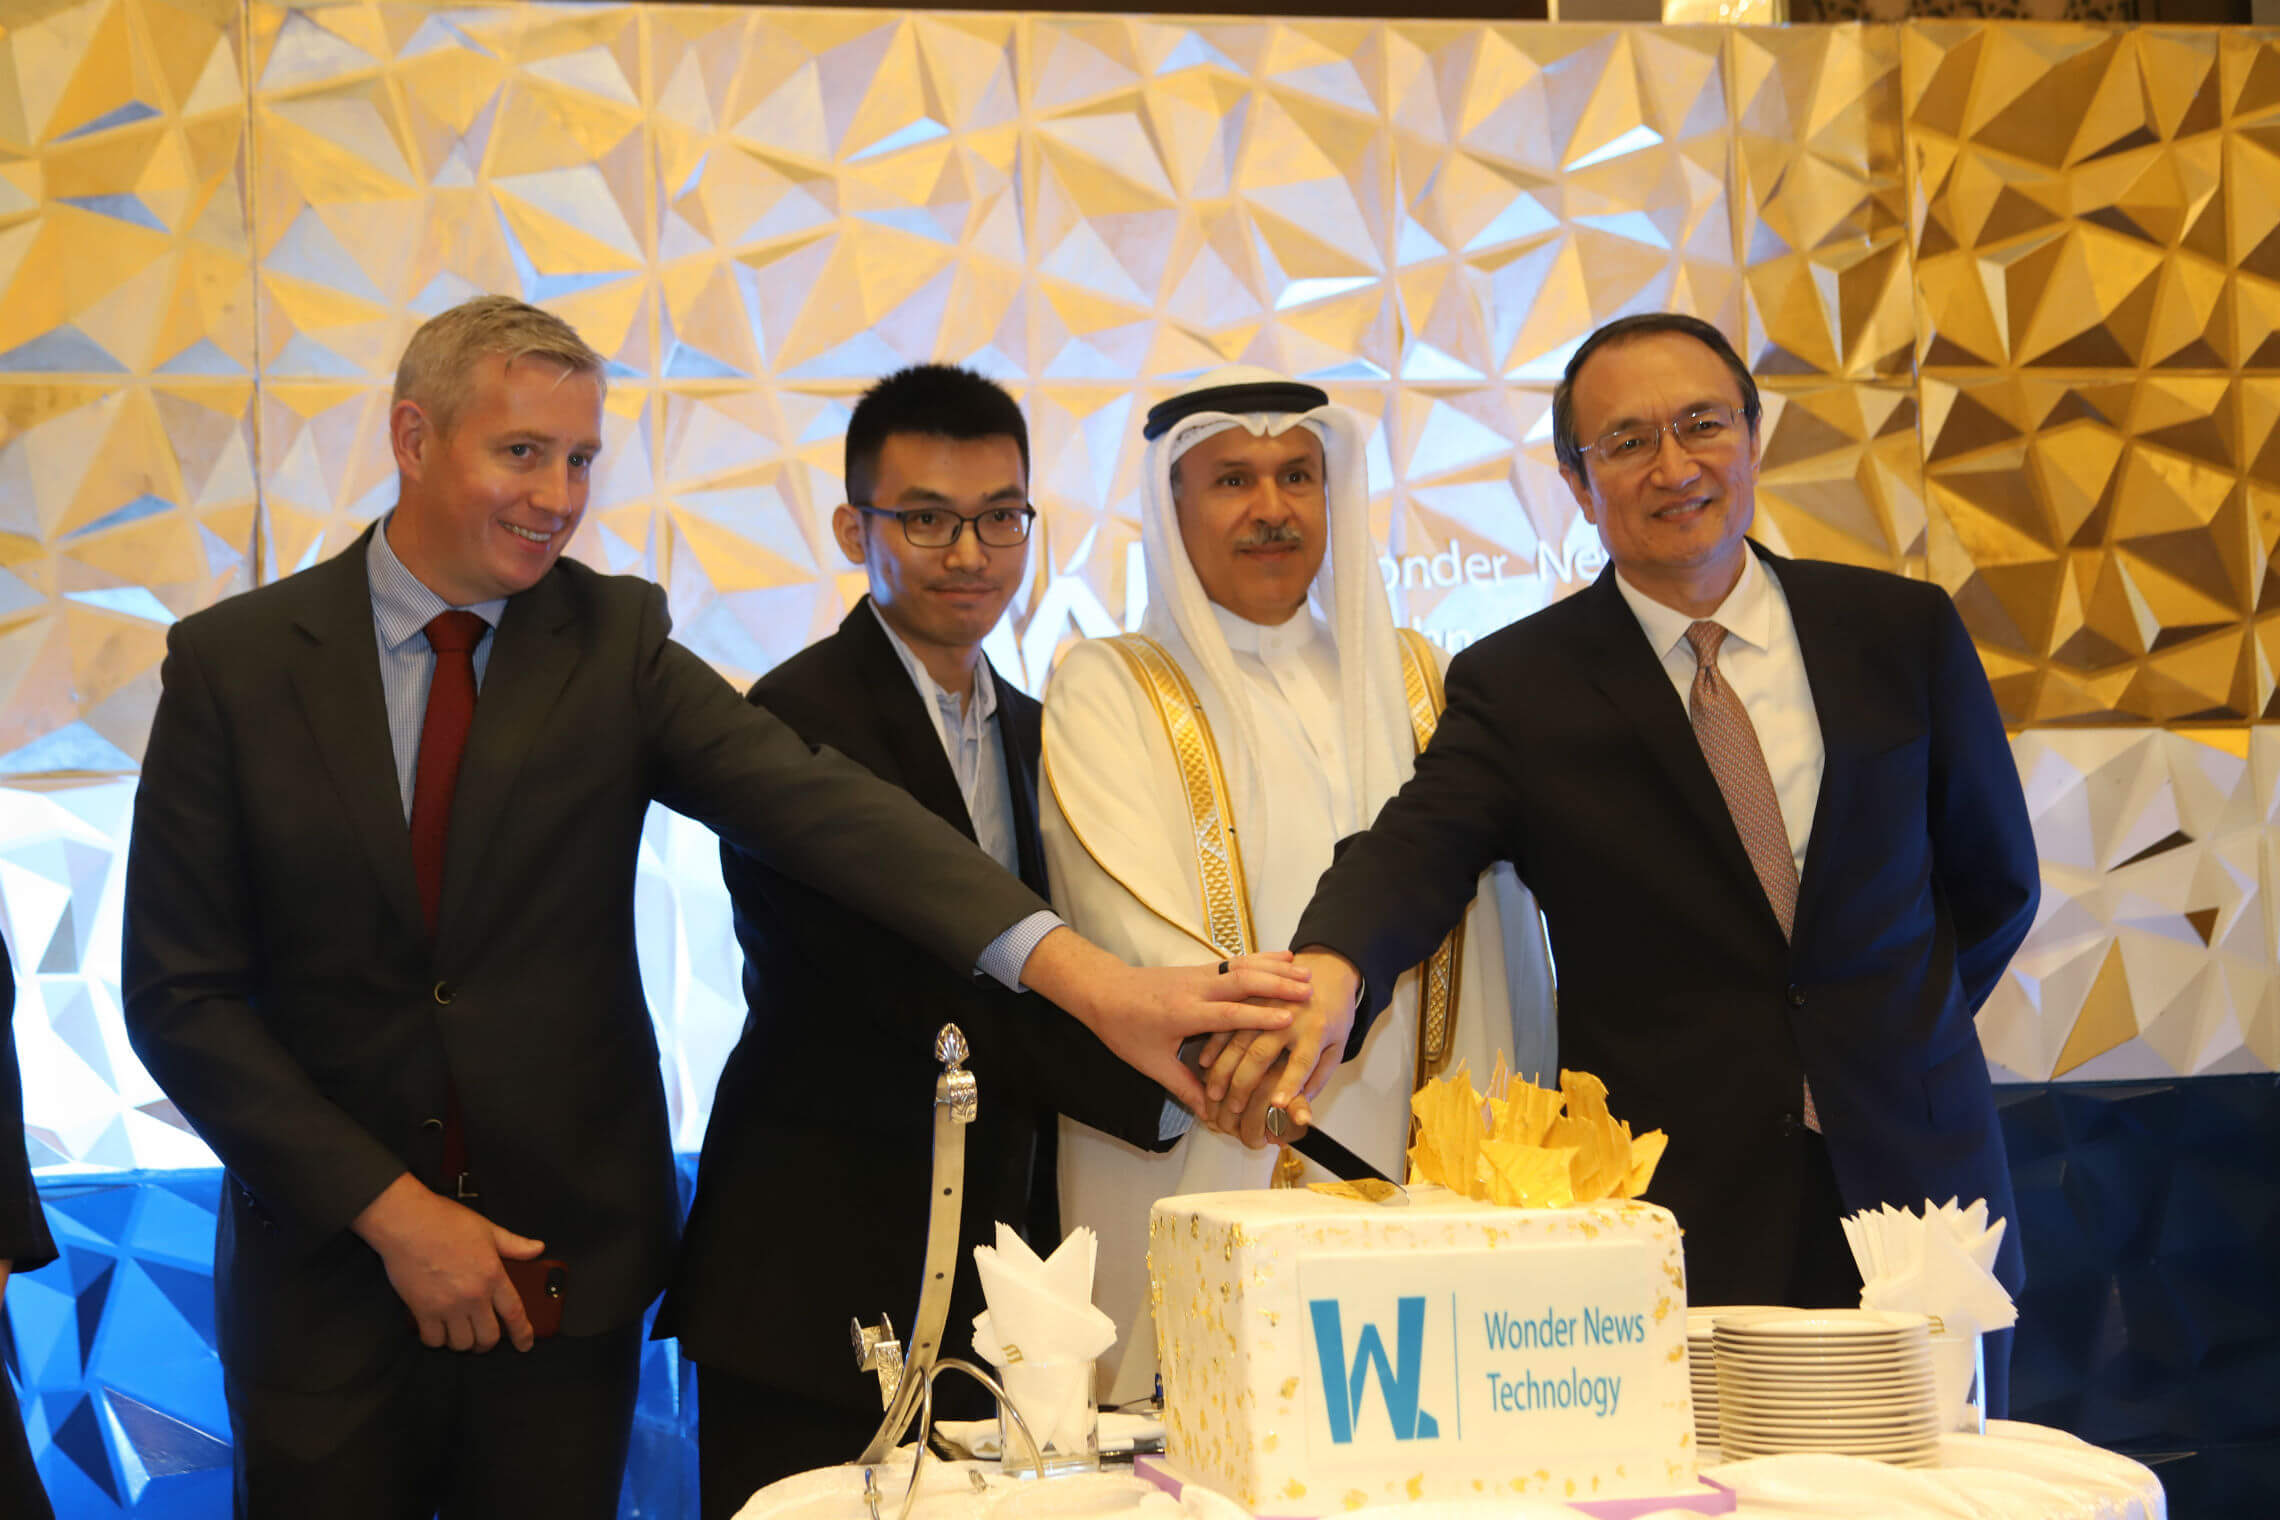 Wonder News officially launches regional headquarters in Kingdom of Bahrain